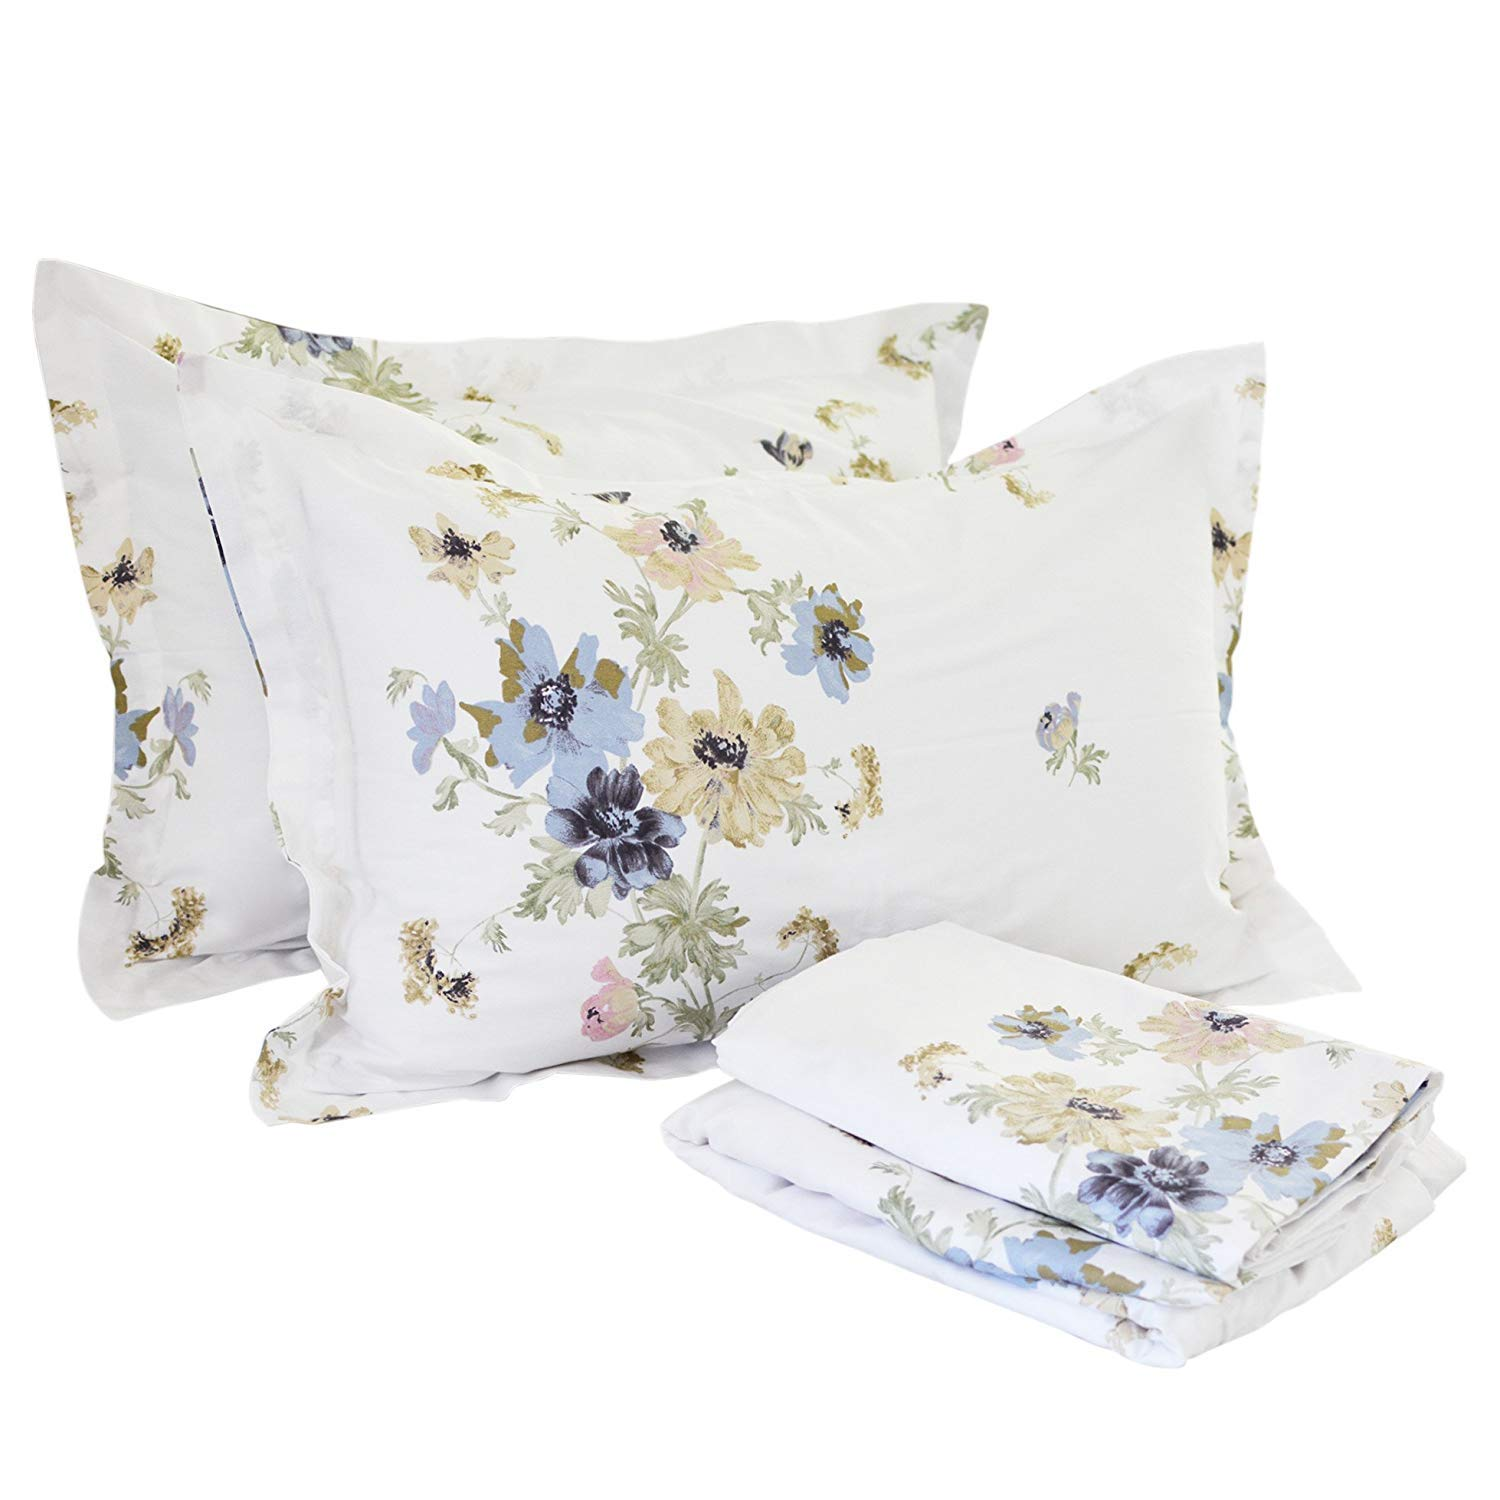 White Floral Twin XL FADFAY Cotton Bed Sheet Set bluee Hydrangea Floral Bed Sheets 4Piece King Size